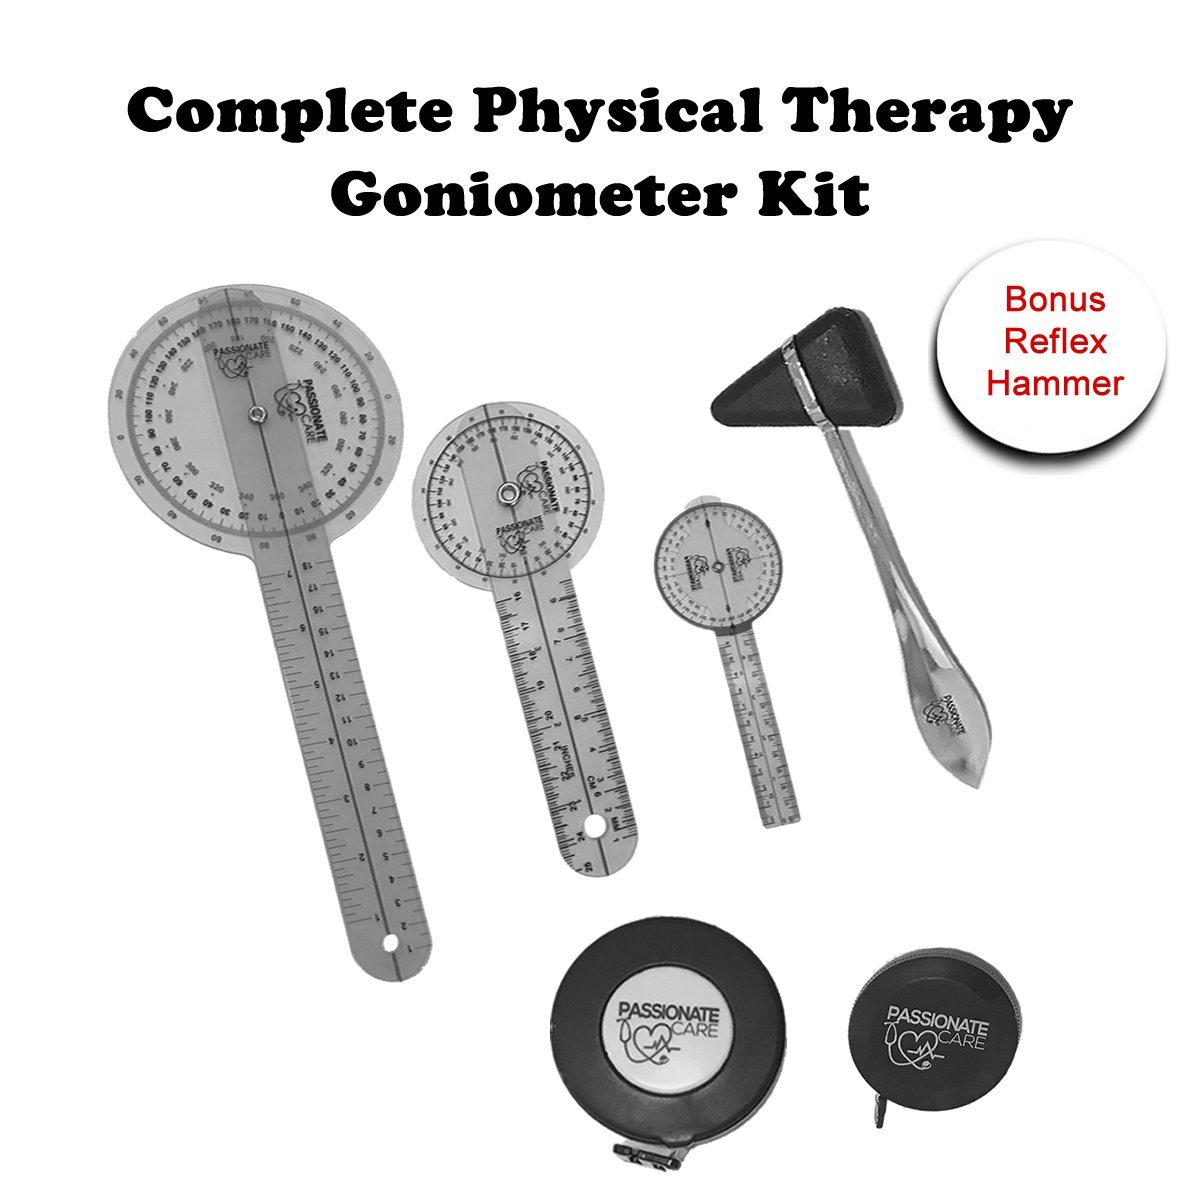 Goniometer Physical Therapy Complete Set W/Bonus Reflex Hammer Including 12,8,6 inches Goni's Plus Two Bonus Measuring Tapes. Occupational Therapy Tools. Ideal for Clinical or Home Rehab